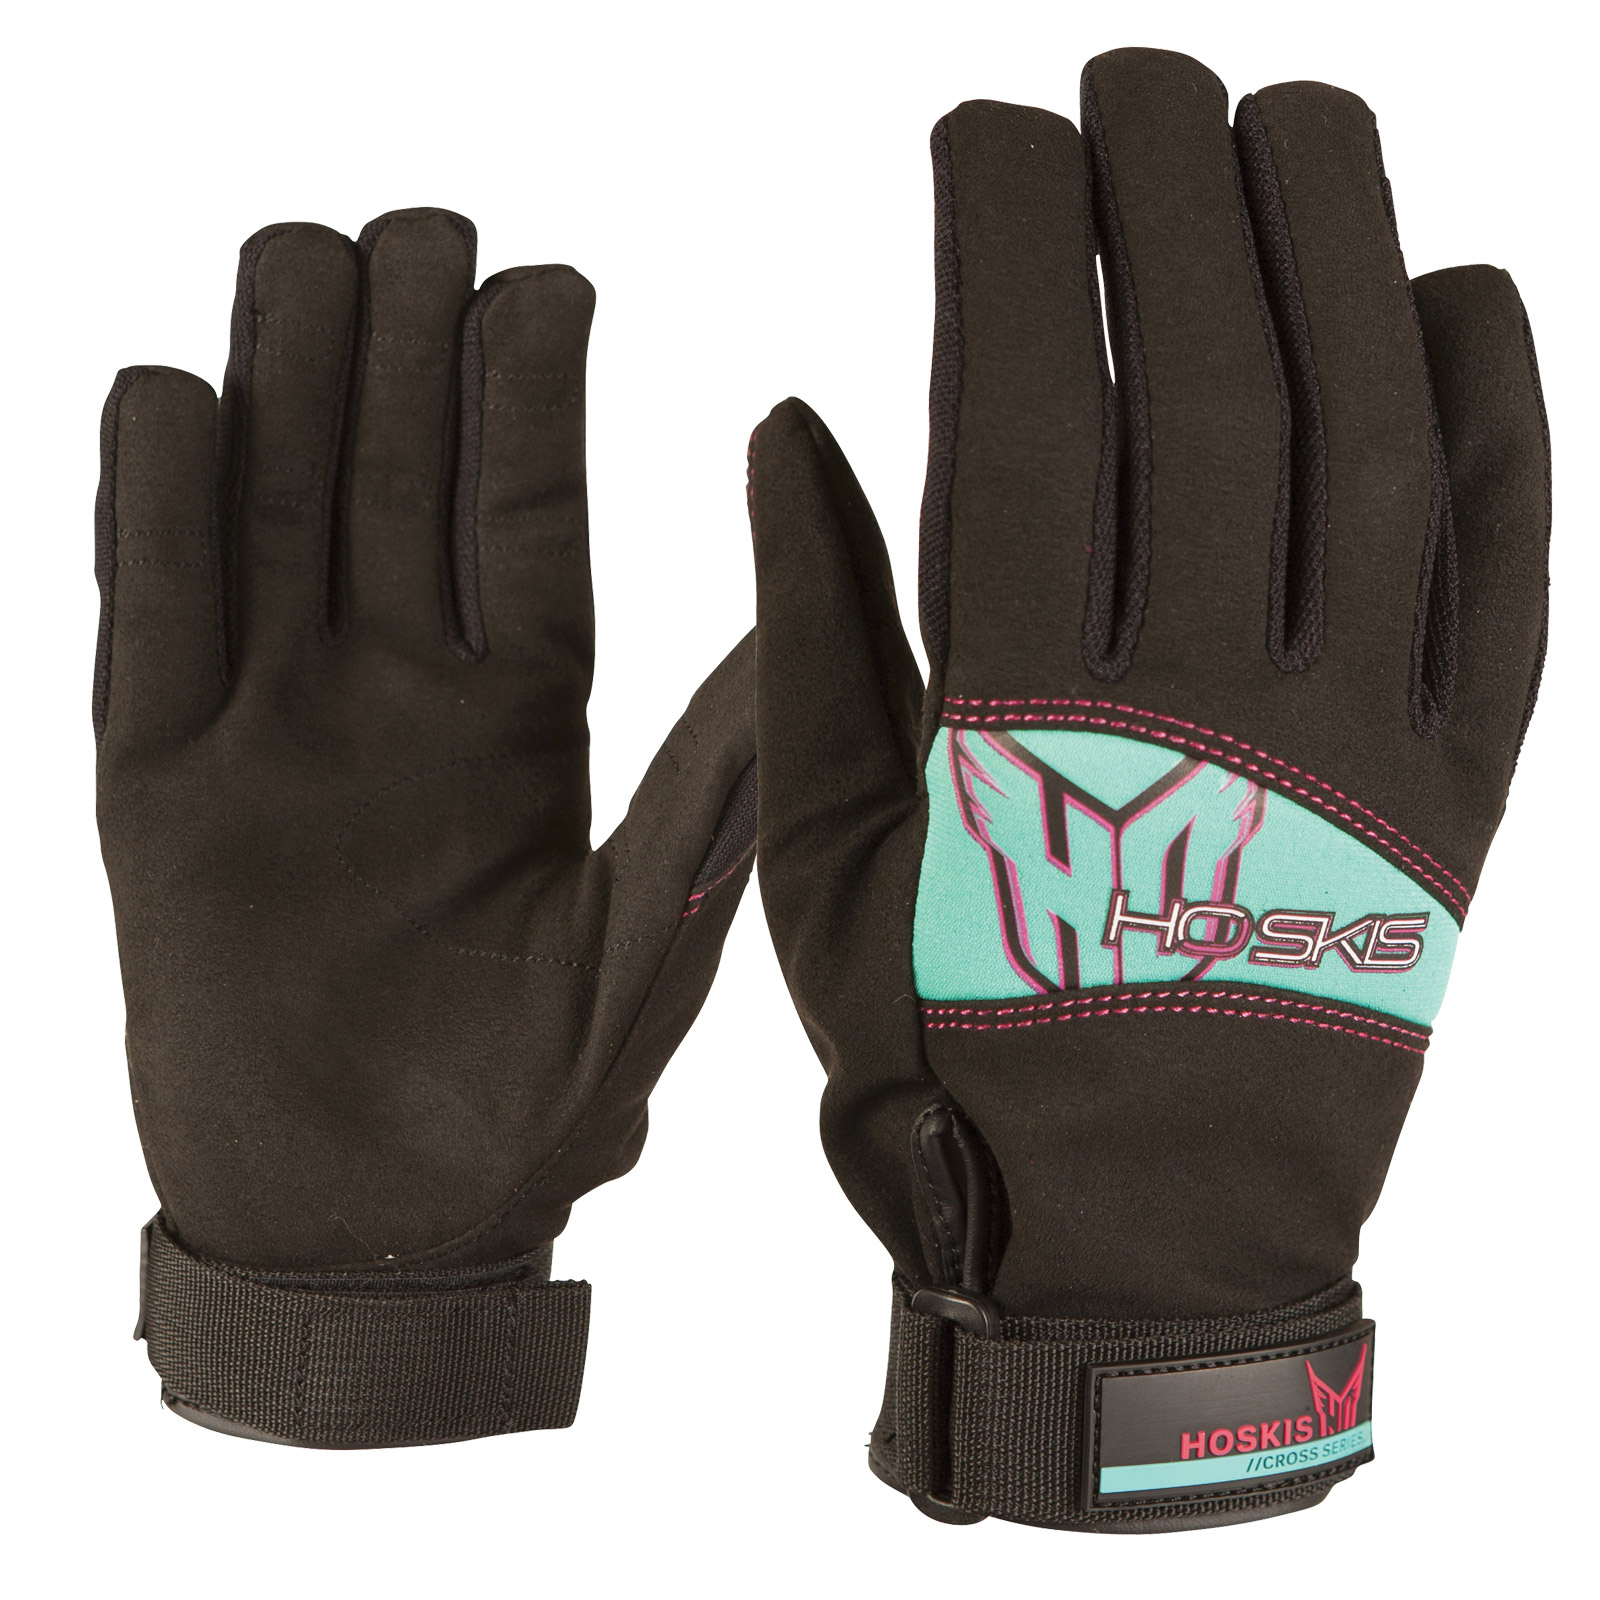 PRO GRIP WOMEN'S GLOVE HO SPORTS 2018